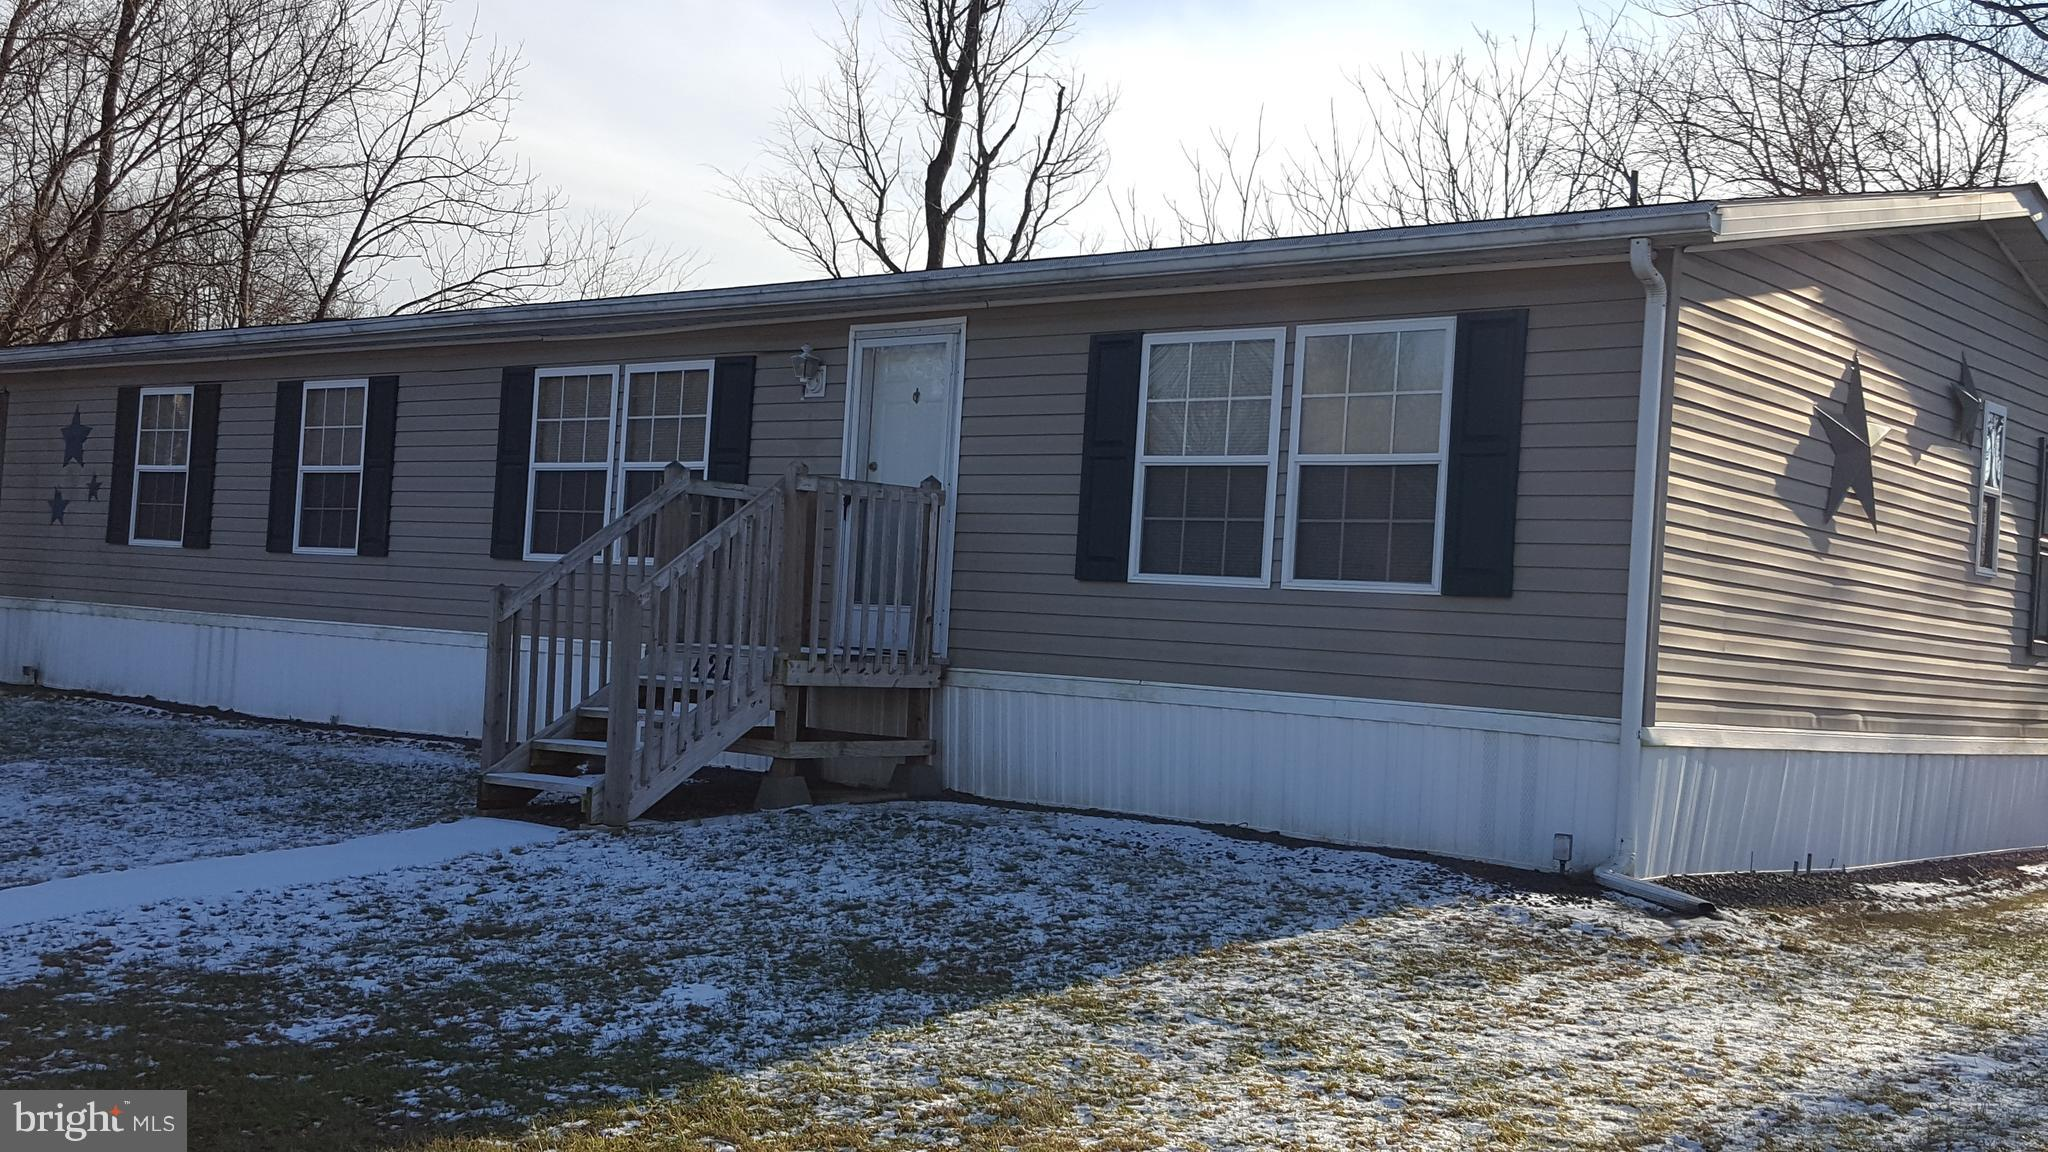 3 bedroom double wide on great end of road lot, off street parking, side covered porch. 1st floor office/den and laundry, propane hear with central ac all appliances included. Lot rent is $470.00. Includes water,sewer, trash, recycling.